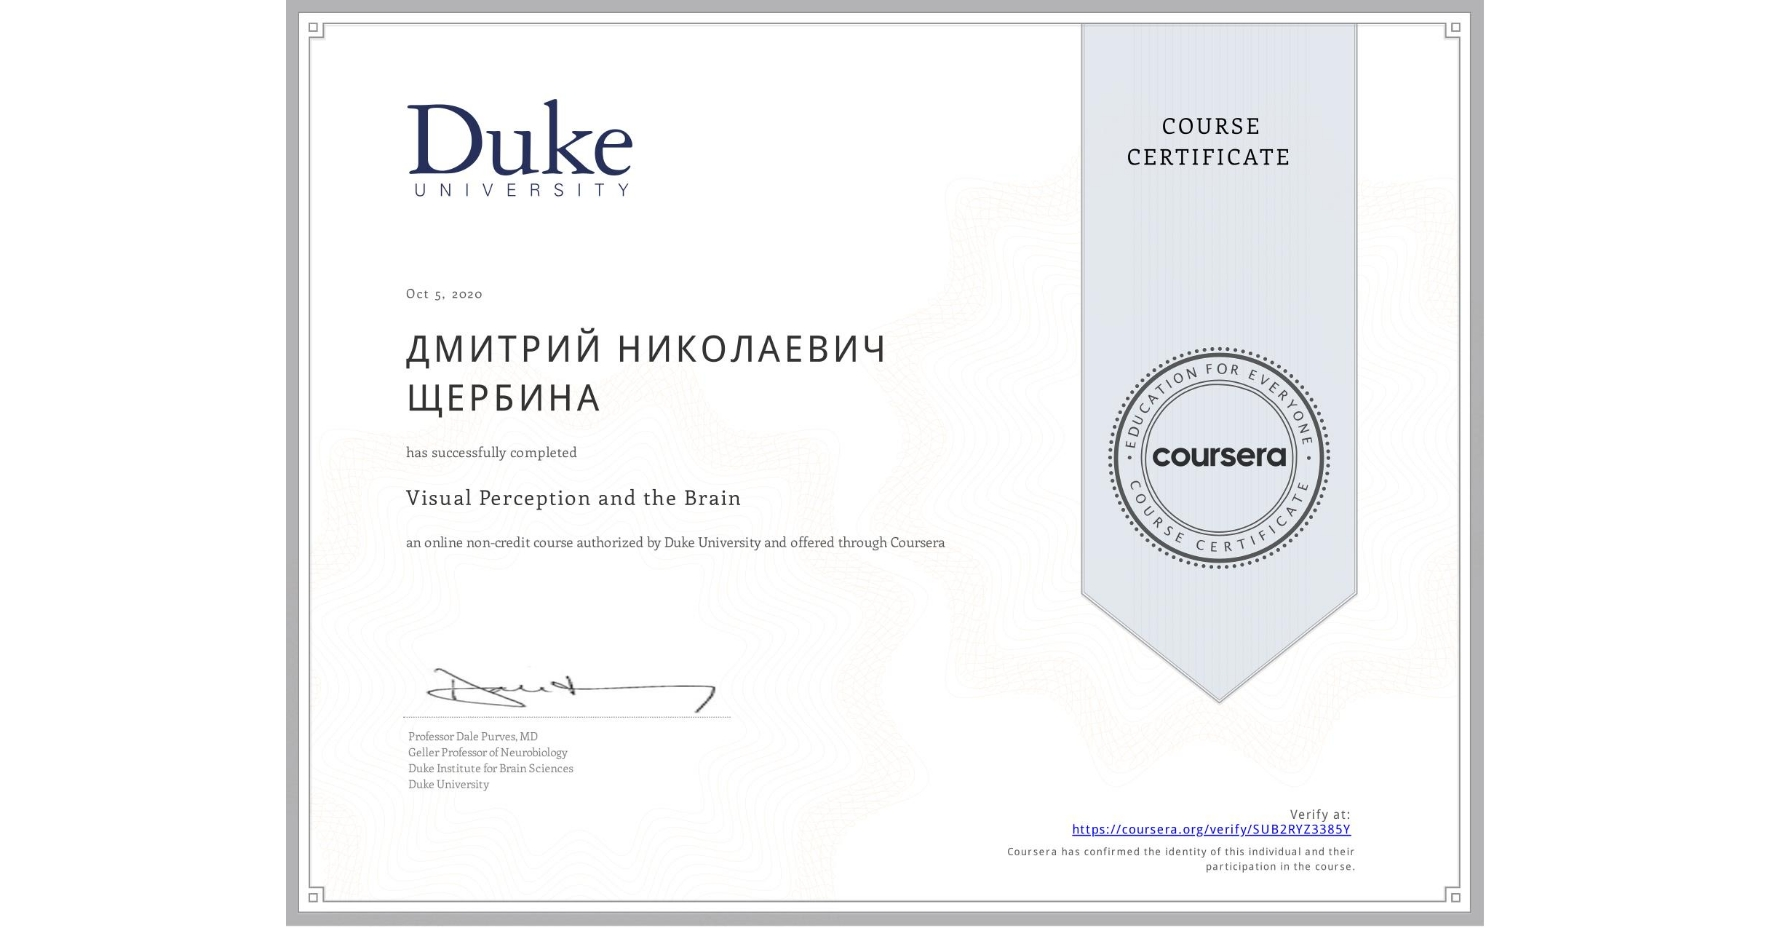 View certificate for ДМИТРИЙ НИКОЛАЕВИЧ ЩЕРБИНА, Visual Perception and the Brain, an online non-credit course authorized by Duke University and offered through Coursera